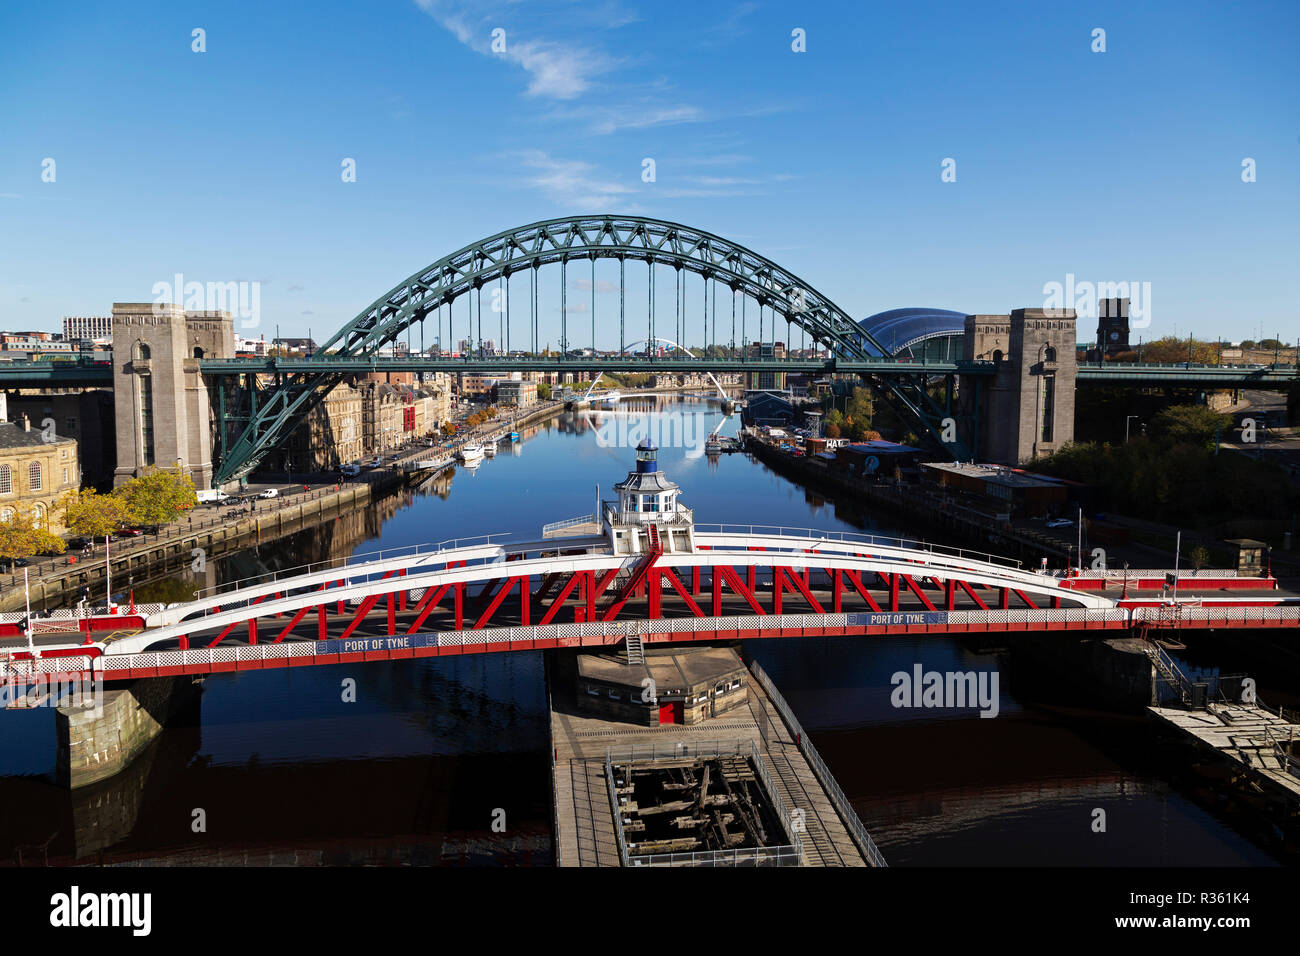 The Swing Bridge and Tyne Bridge spanning the River Tyne in north-east England. The bridges connect Newcastle upon Tyne and Gateshead. - Stock Image